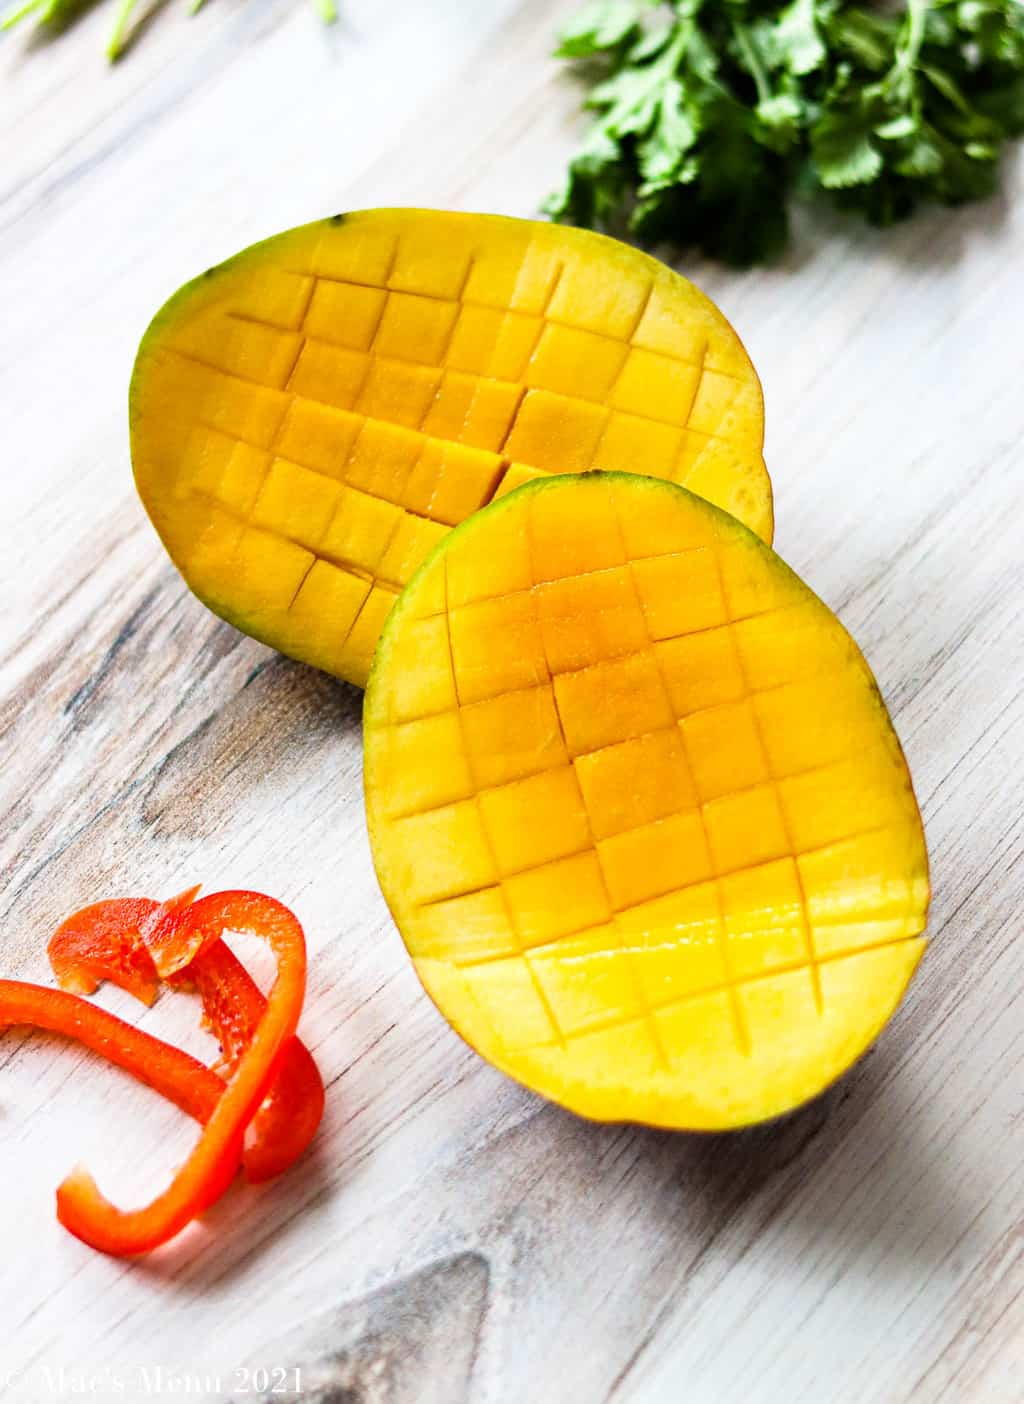 two halves of mango with a crisscross pattern cut ito them